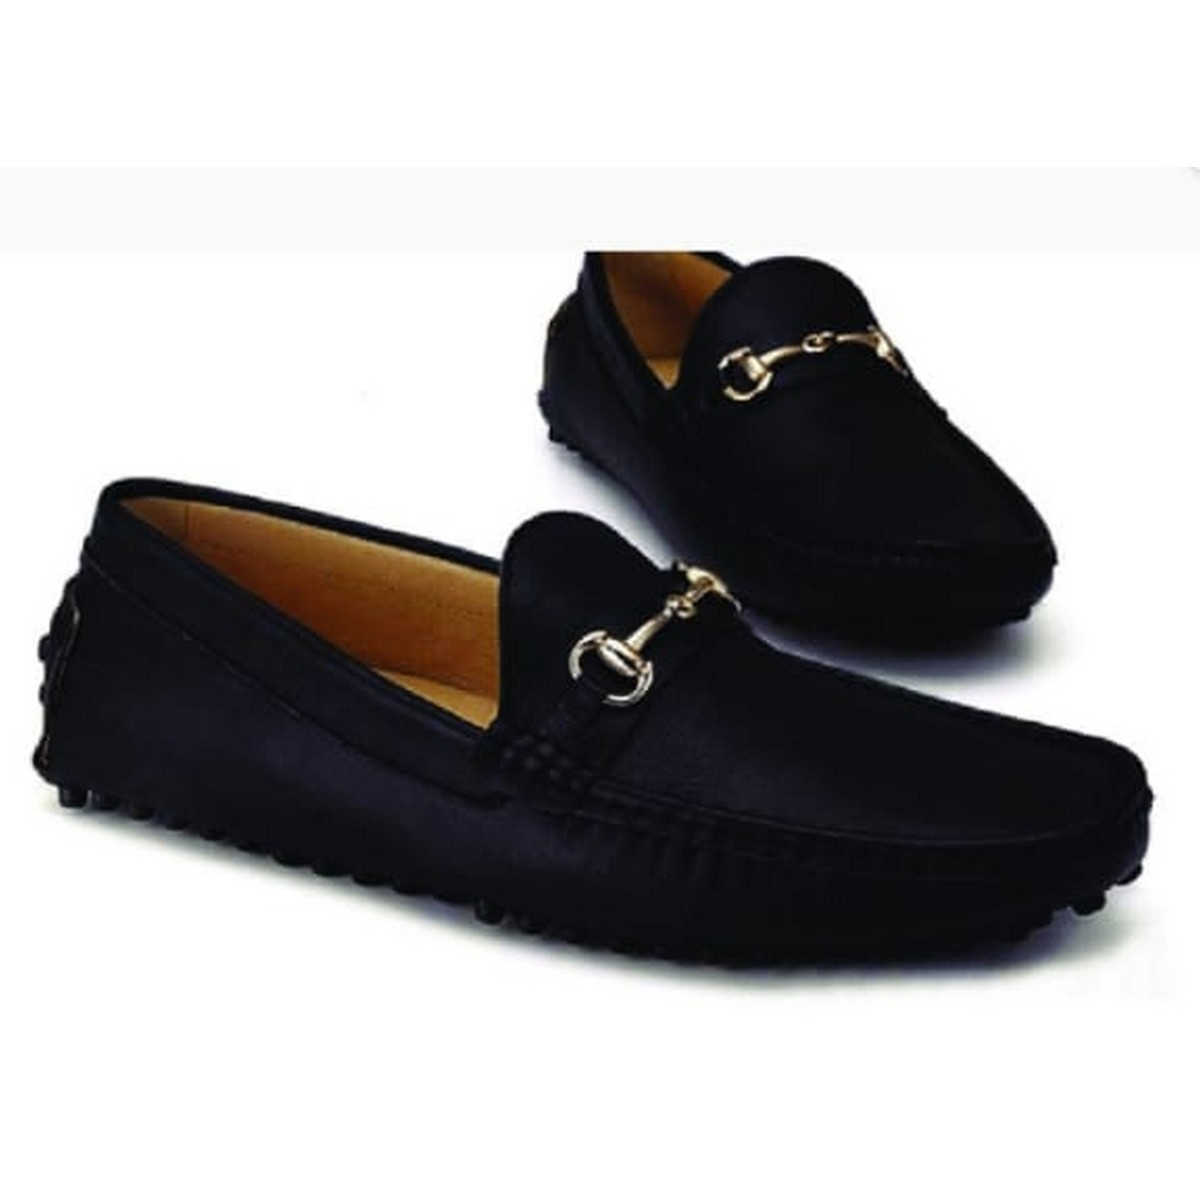 Stylish Men's Loafers